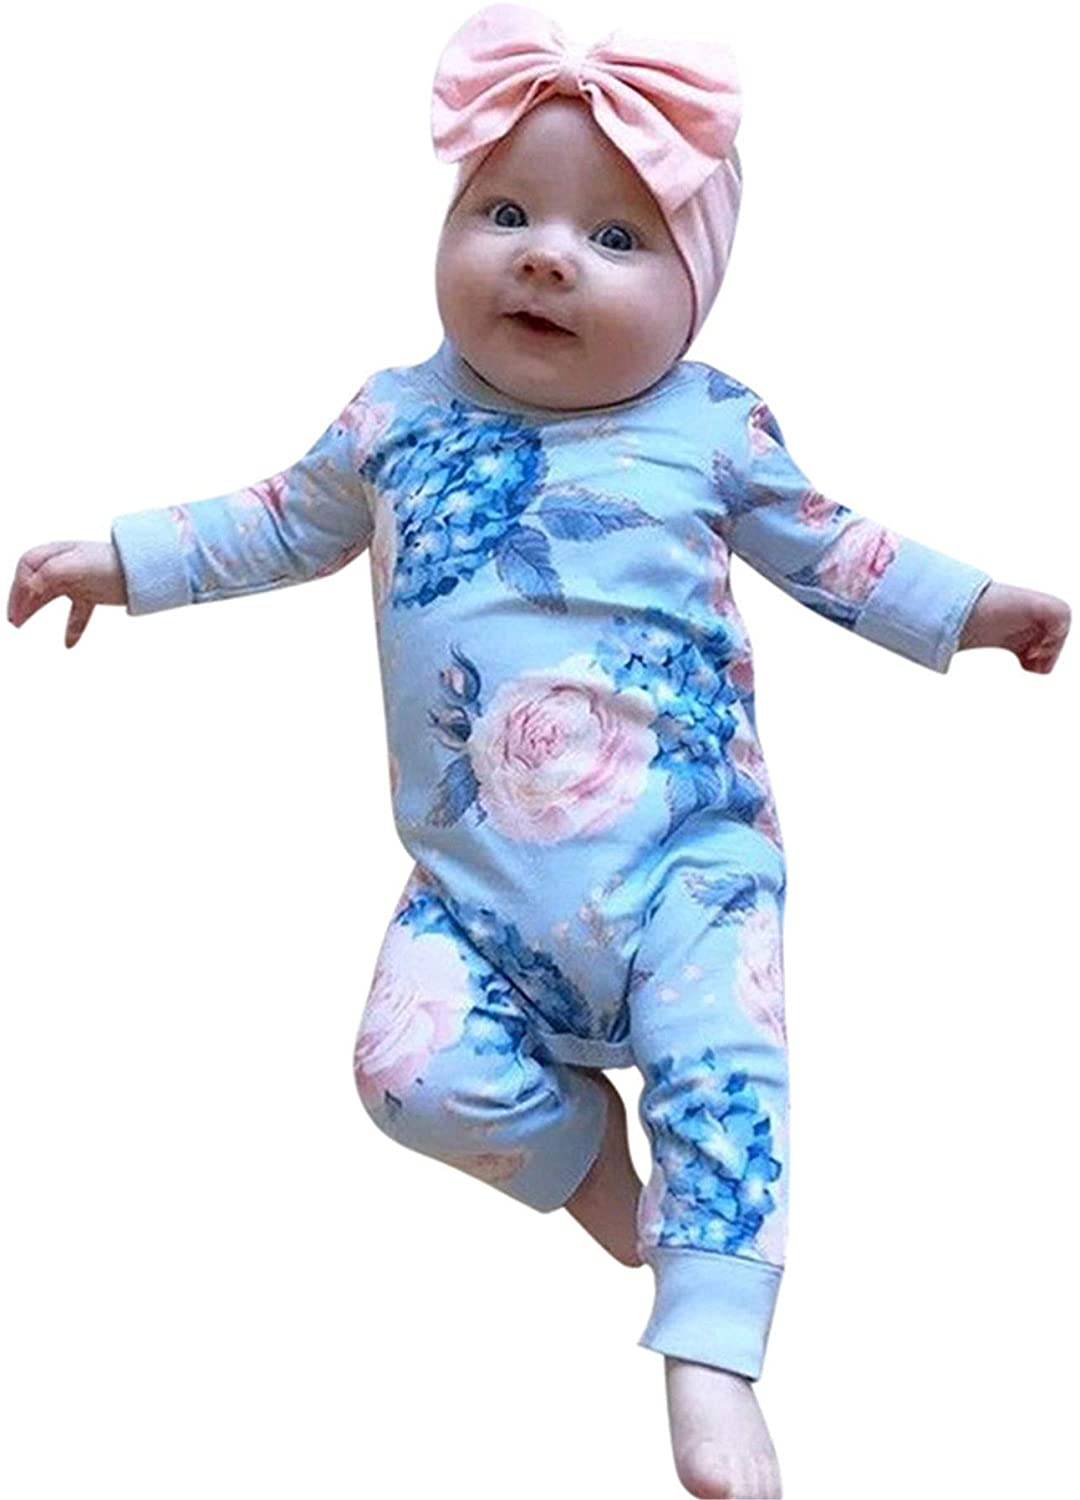 2pcs Toddler Kids Baby Girls Cotton Floral Romper Jumpsuit Bow Hair Band Clothes Sets Long Sleeve Pajamas Outfits